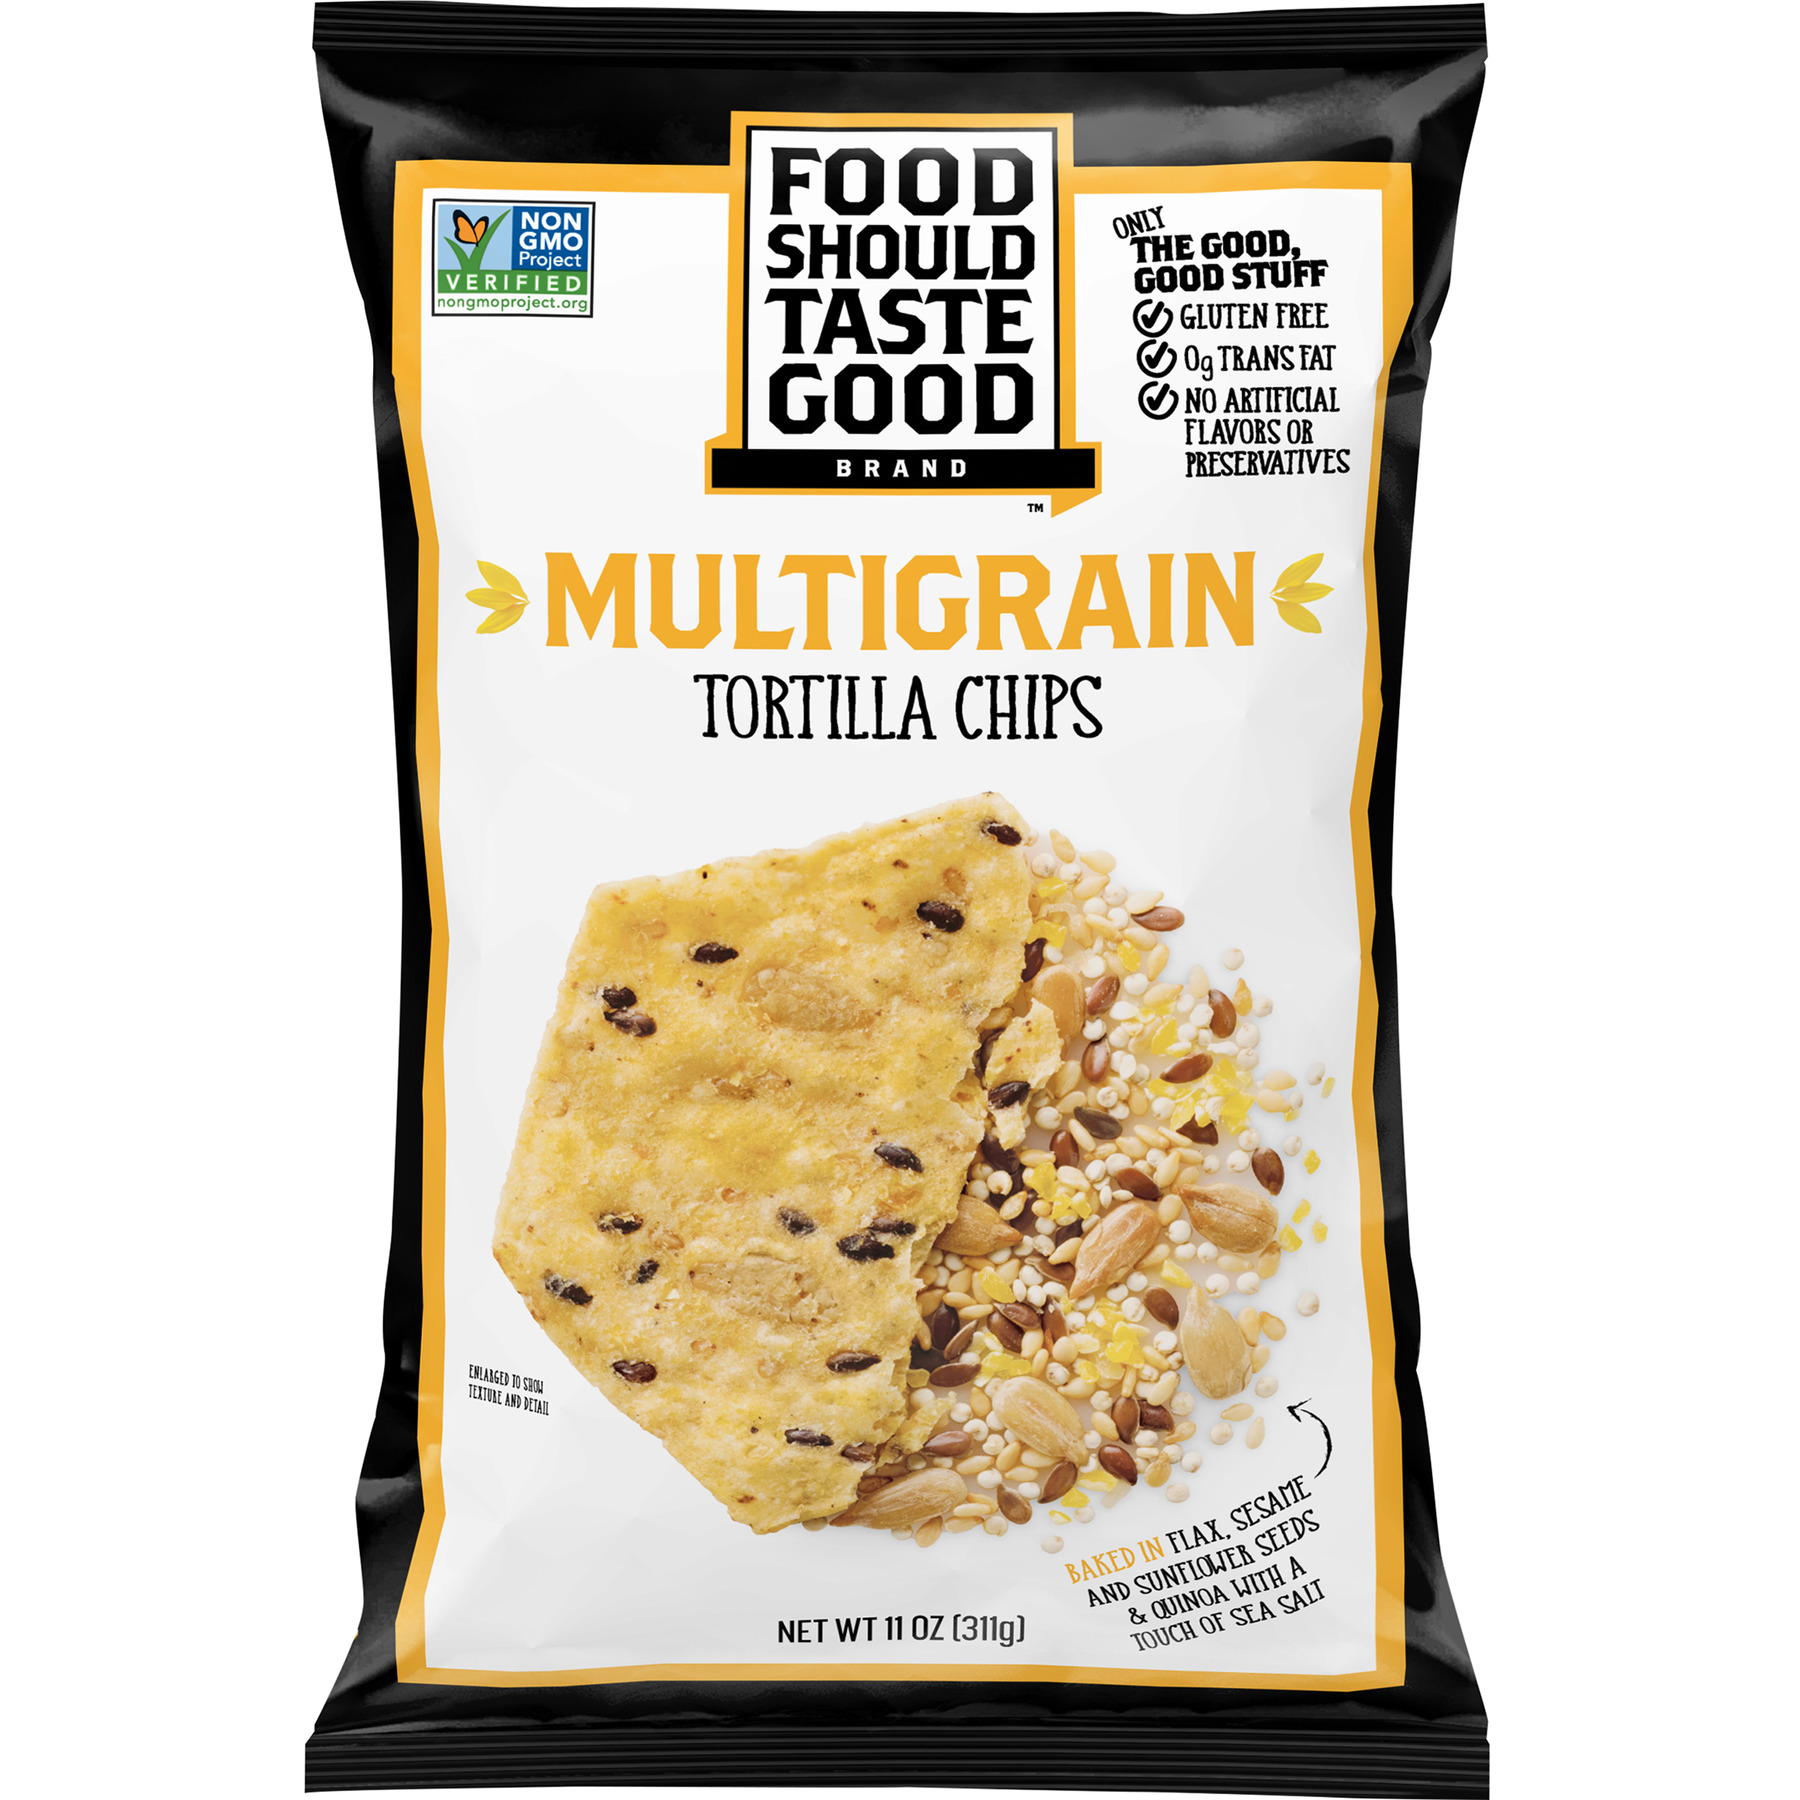 Food Should Taste Good Multigrain Tortilla Chips, 11 oz